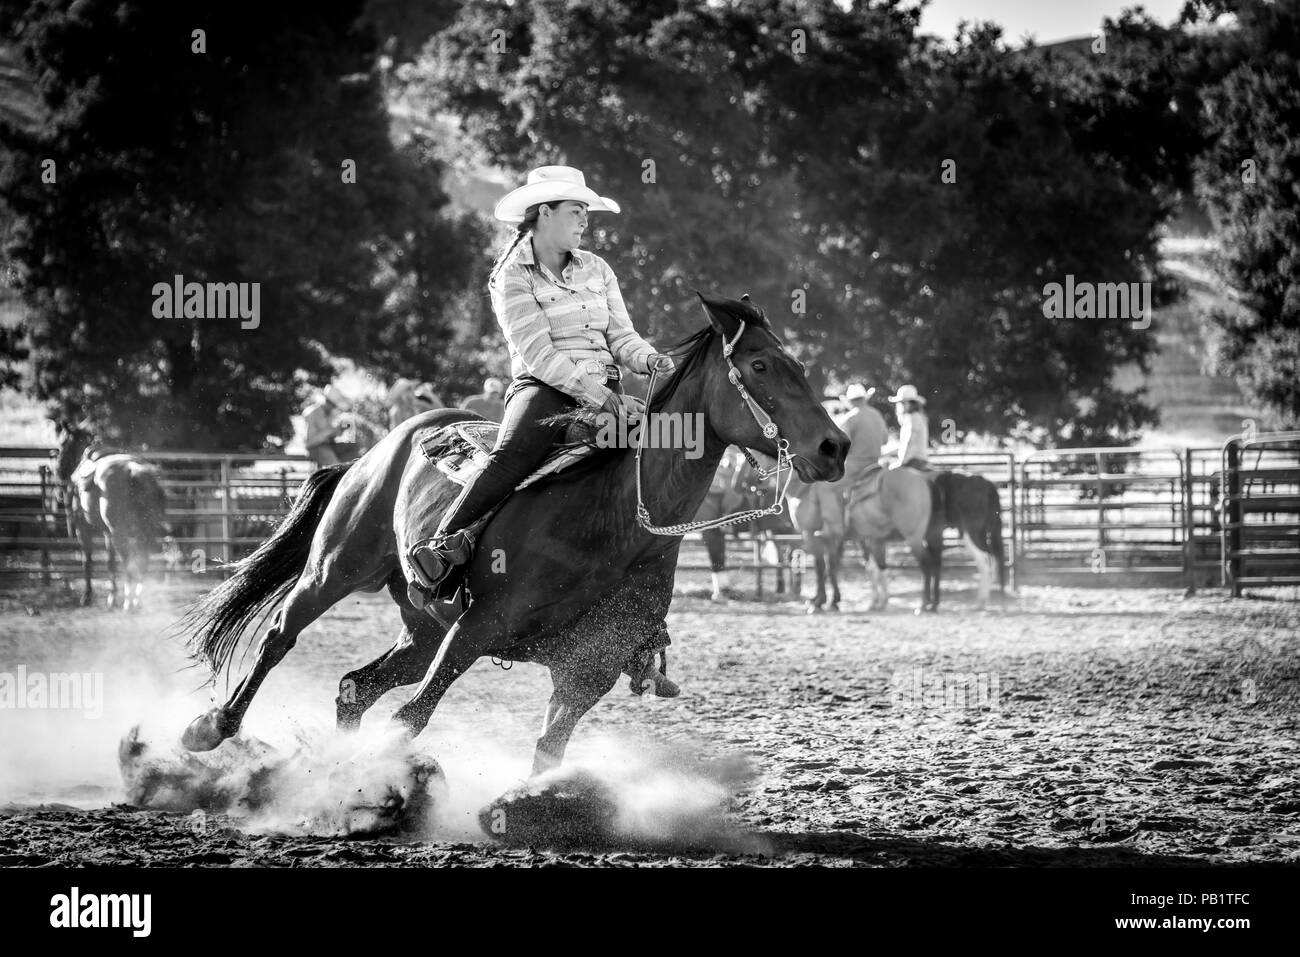 Racing rider on horseback: Real cowgirl shows true grit as her horse leans, digs in during a barrel race stirring up dust from its hooves as they turn - Stock Image